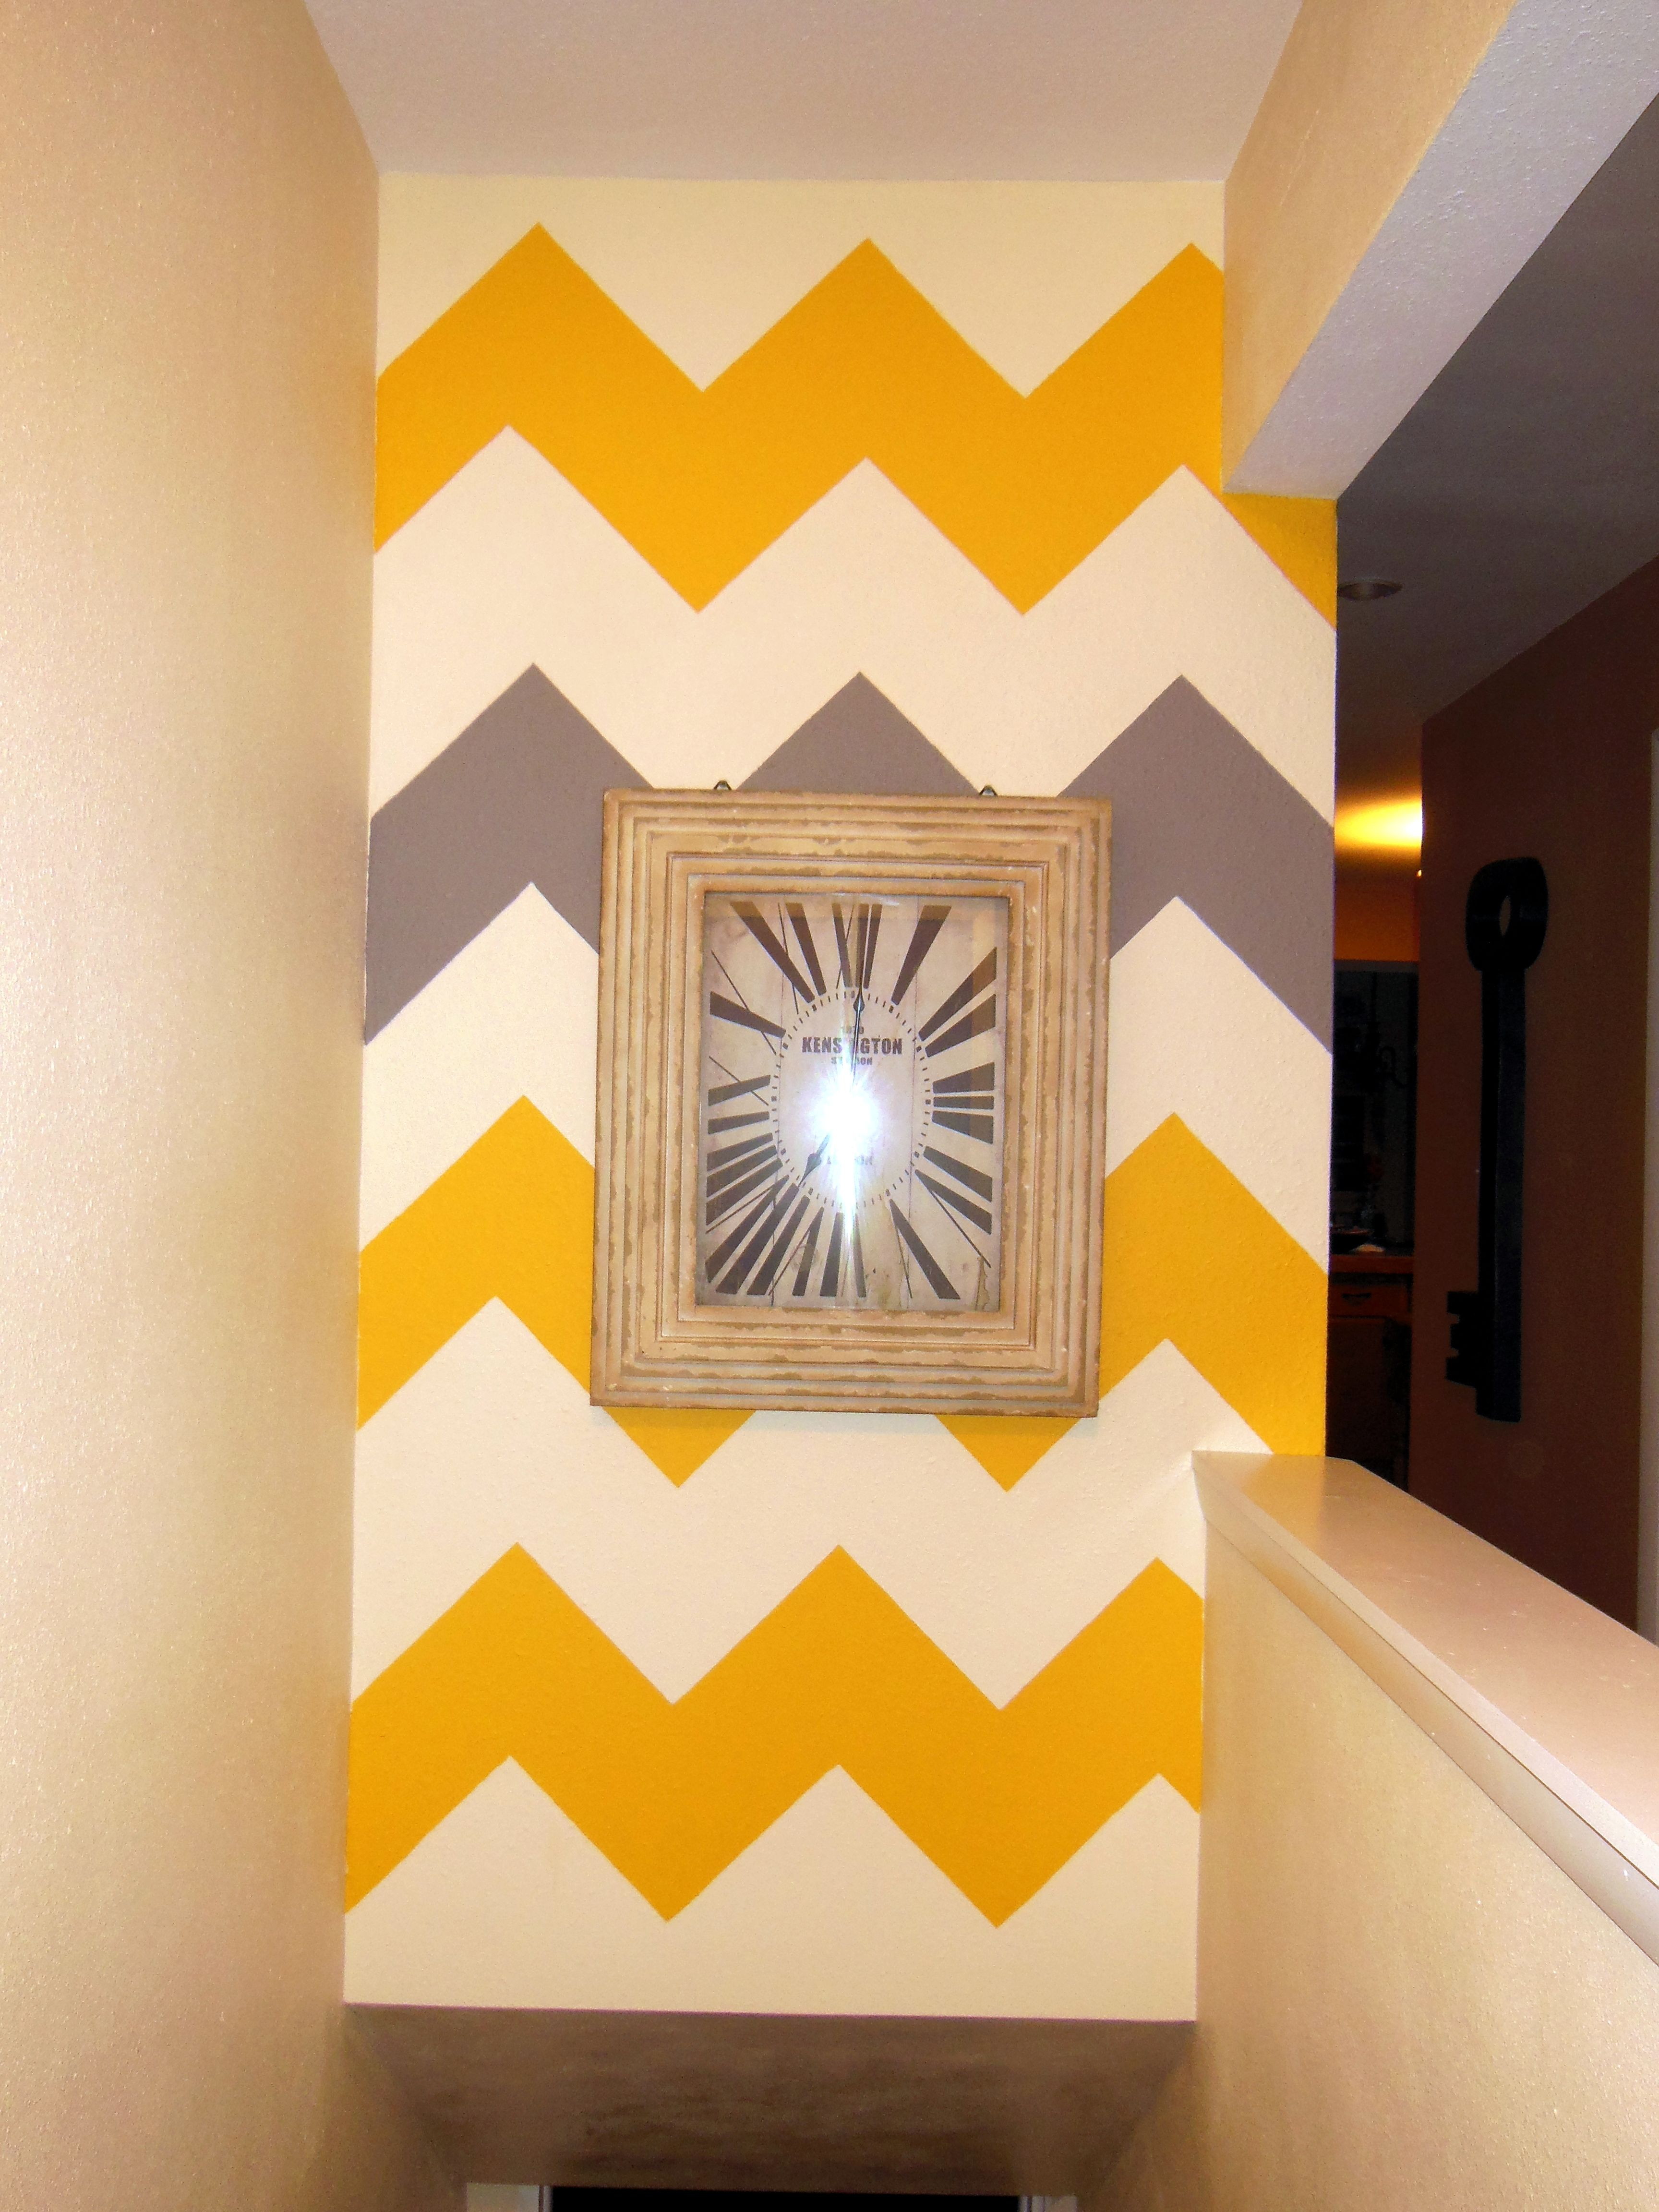 Chevron Wall For Entryway Green For One Stripe Cream Or Tan For